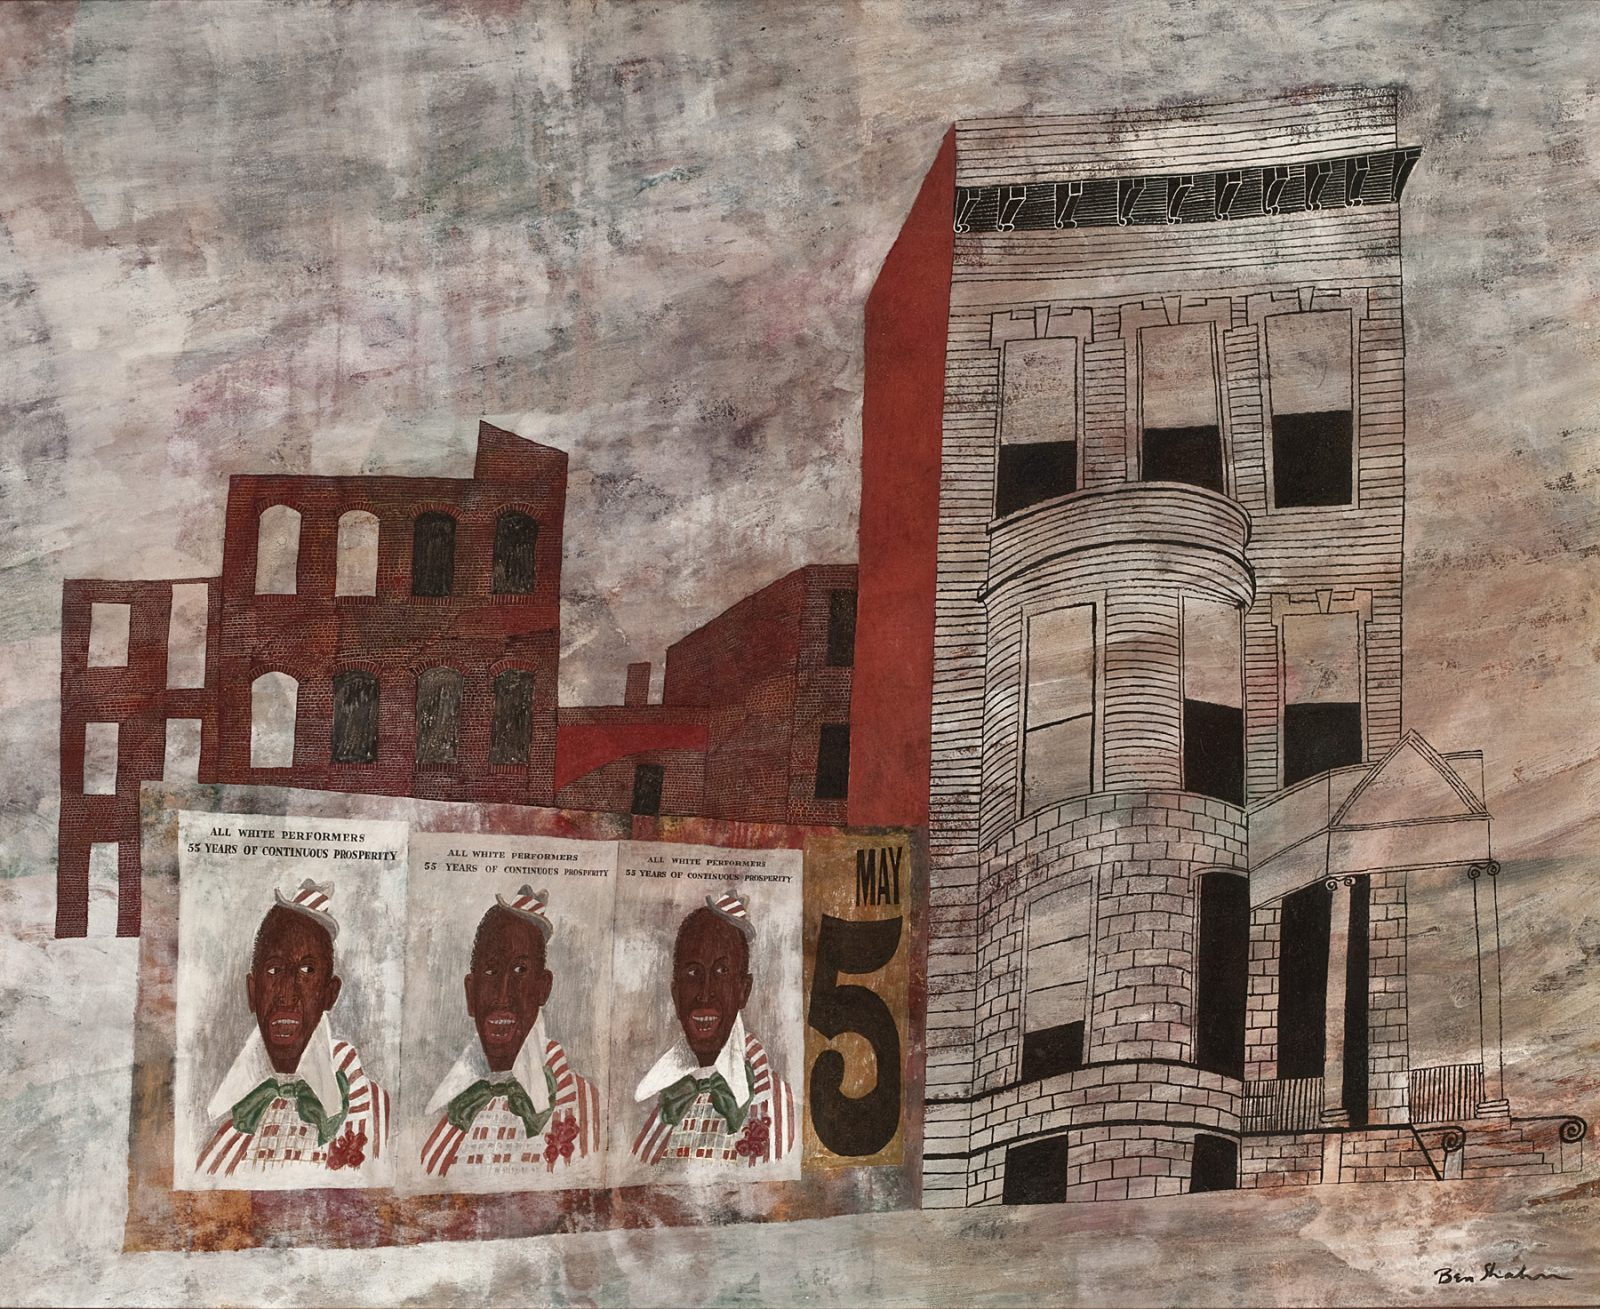 This work by Ben Shahn depicts 3 identical posters in front of an abstract cityscape